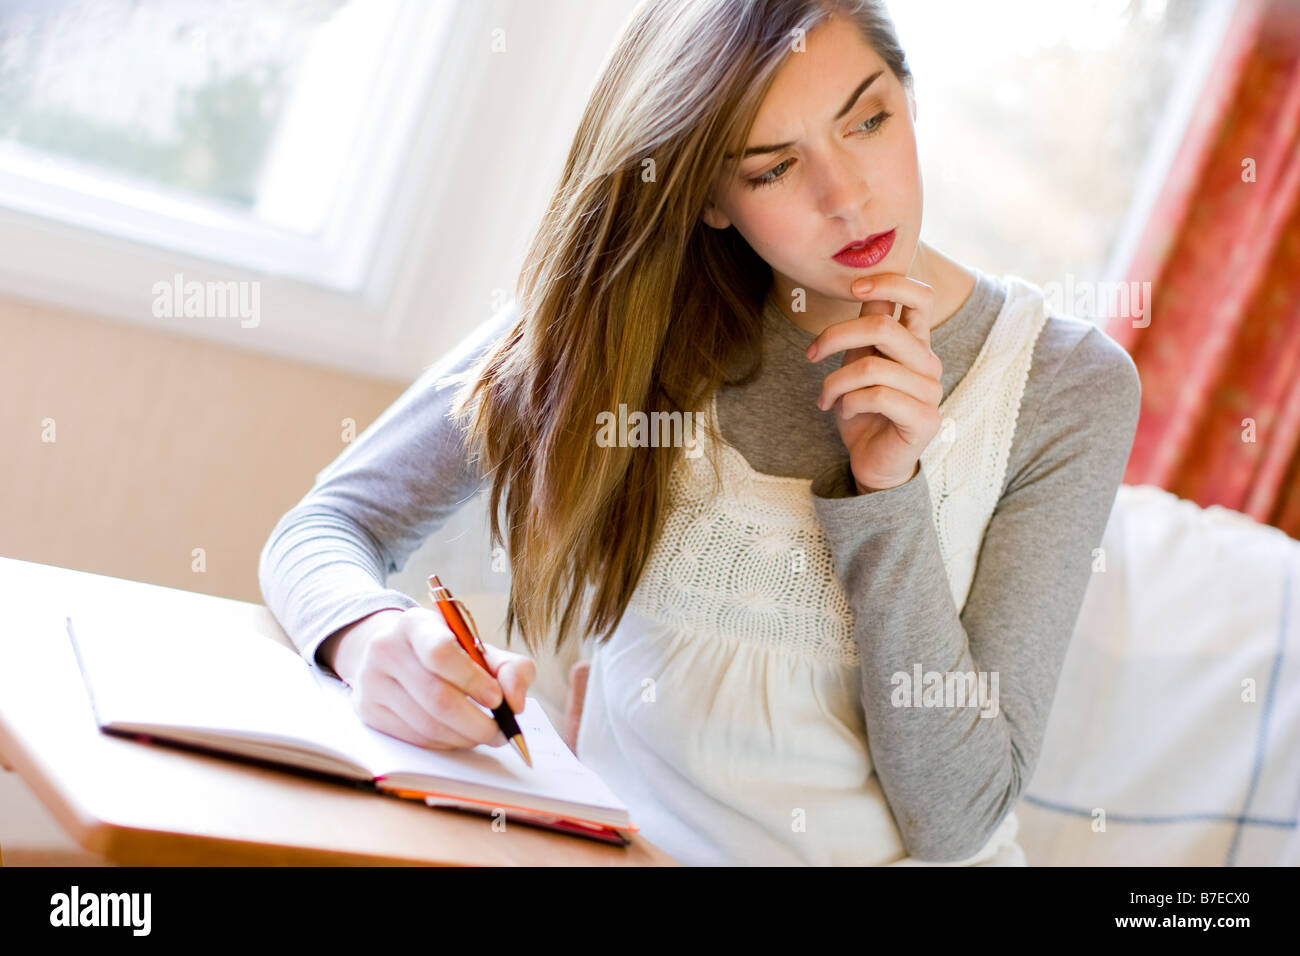 Girl writing in diary - Stock Image